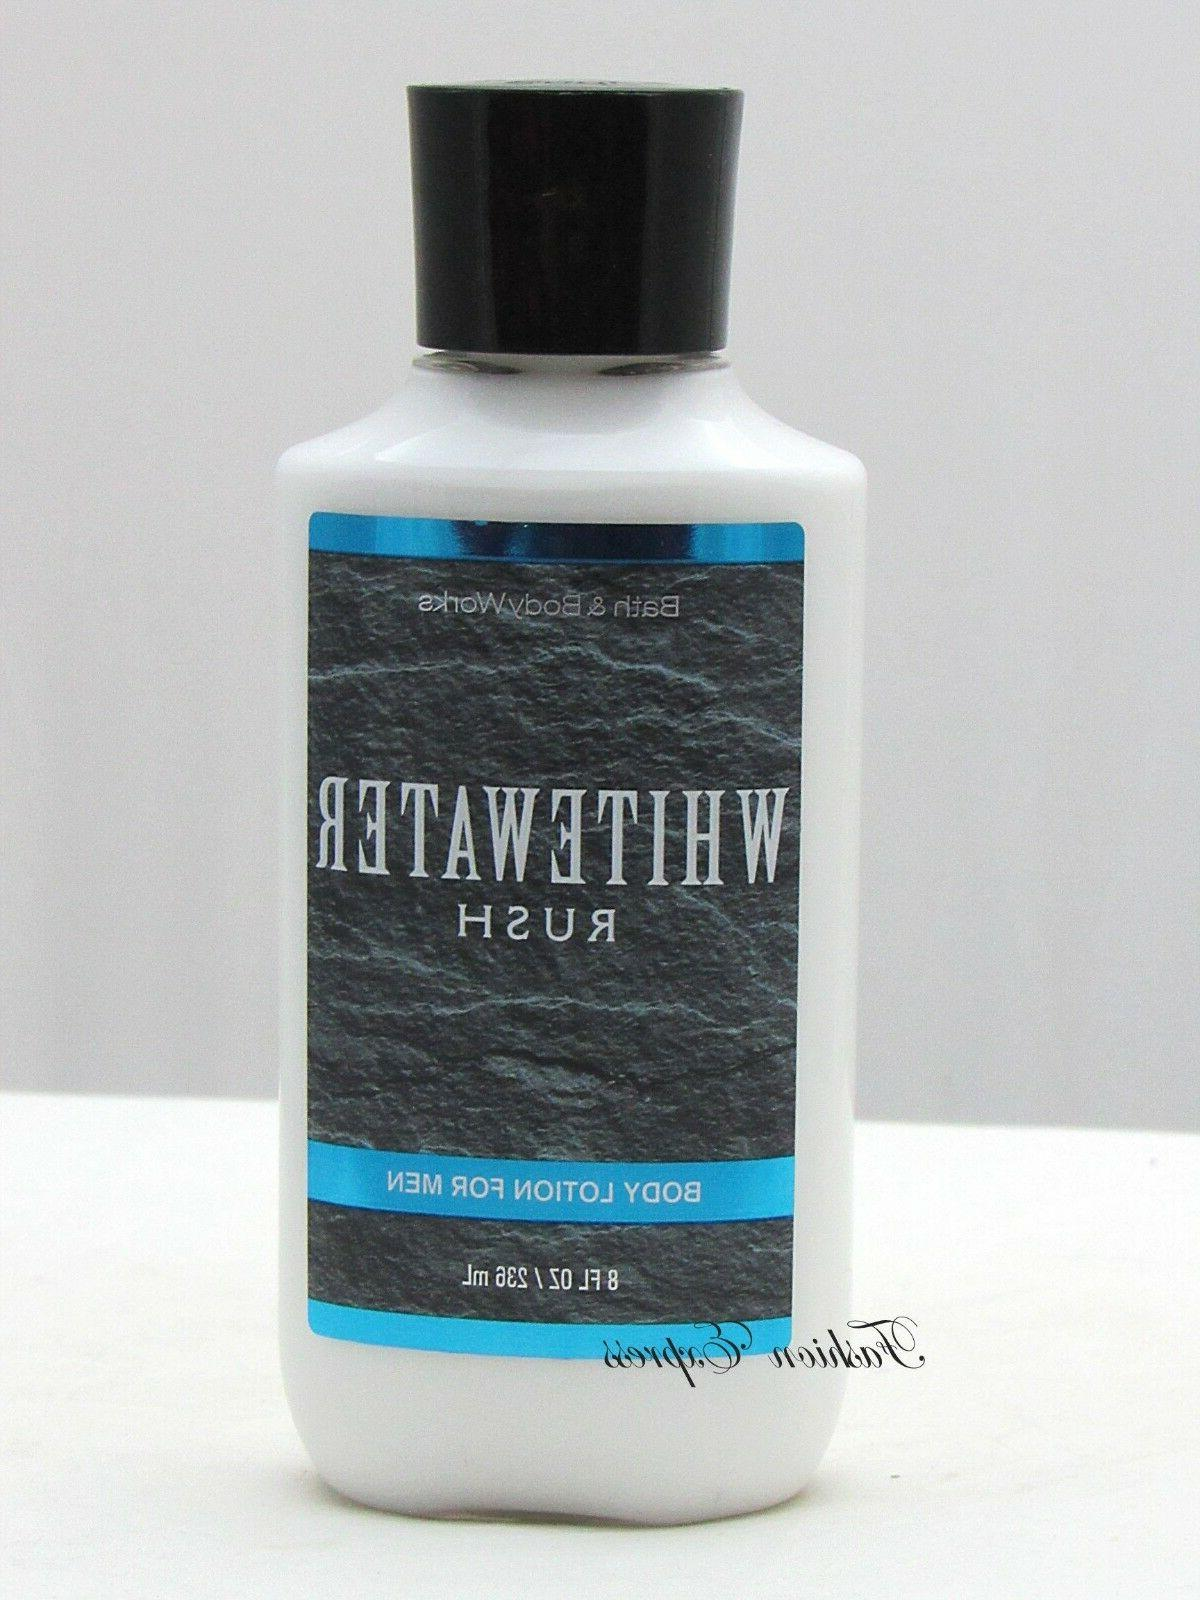 NEW BATH & BODY WORKS WHITEWATER RUSH FOR MEN BODY LOTION HA